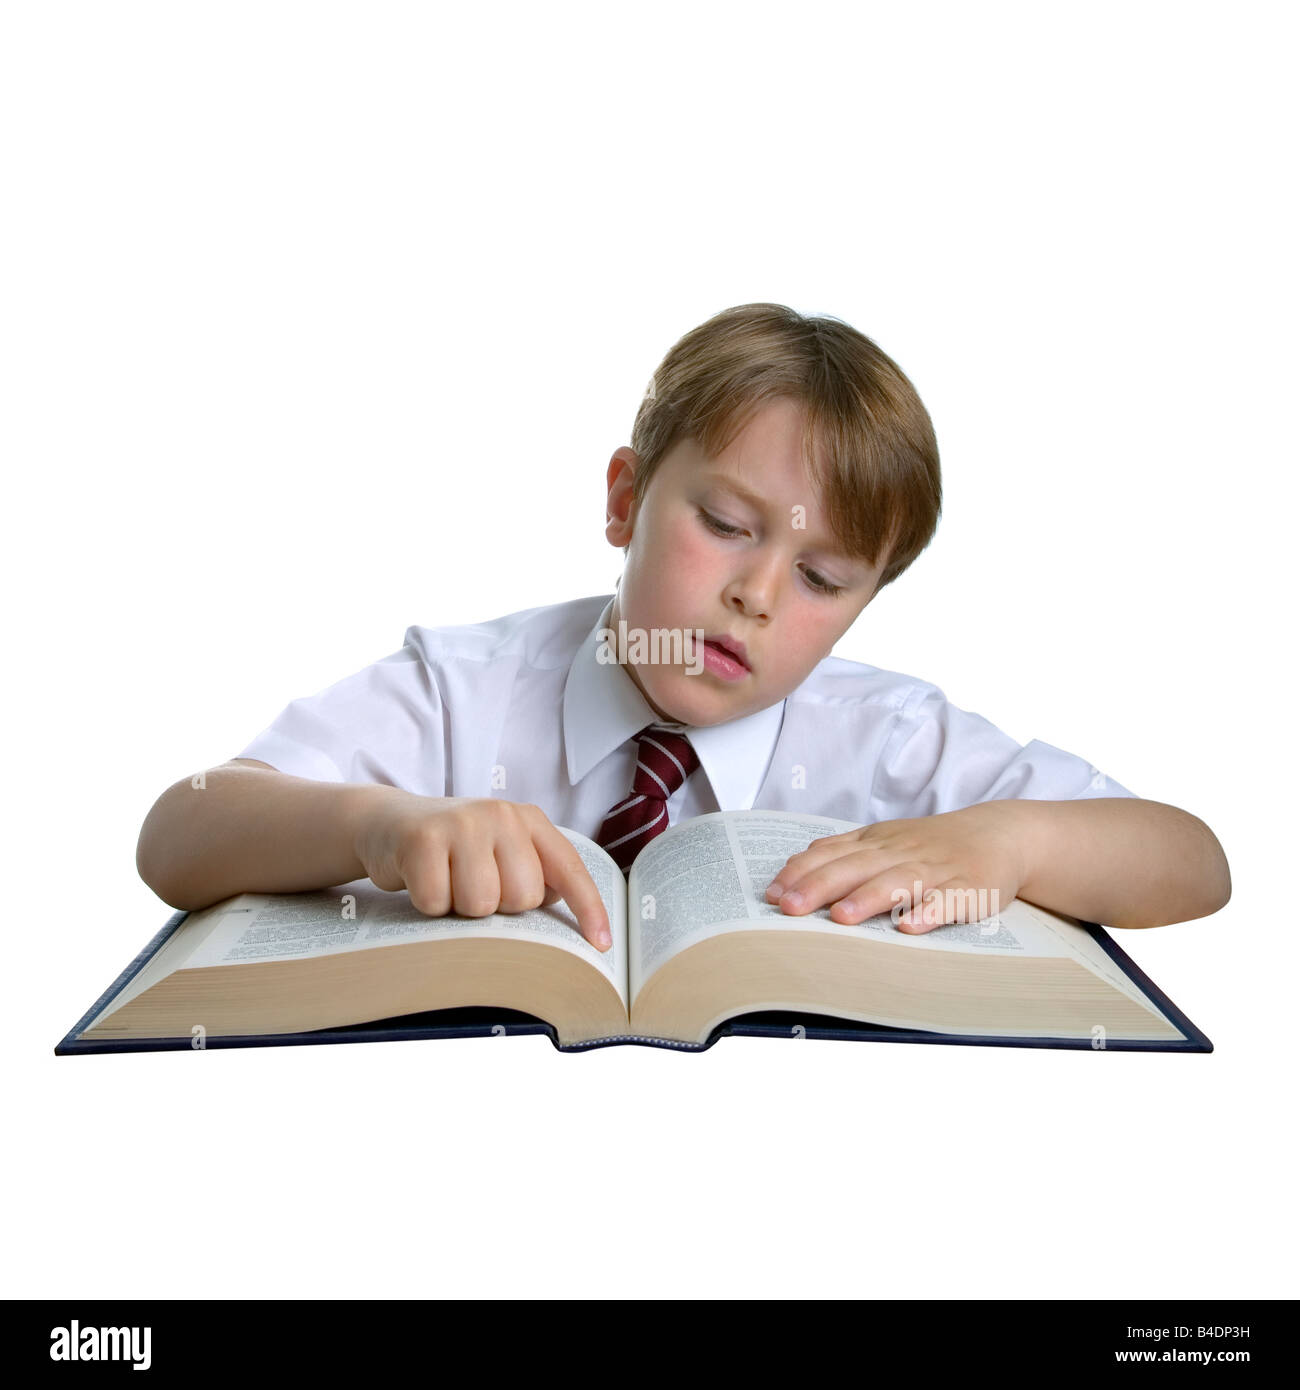 Cut out of a schoolboy reading a reference book whilst doing his school homework - Stock Image